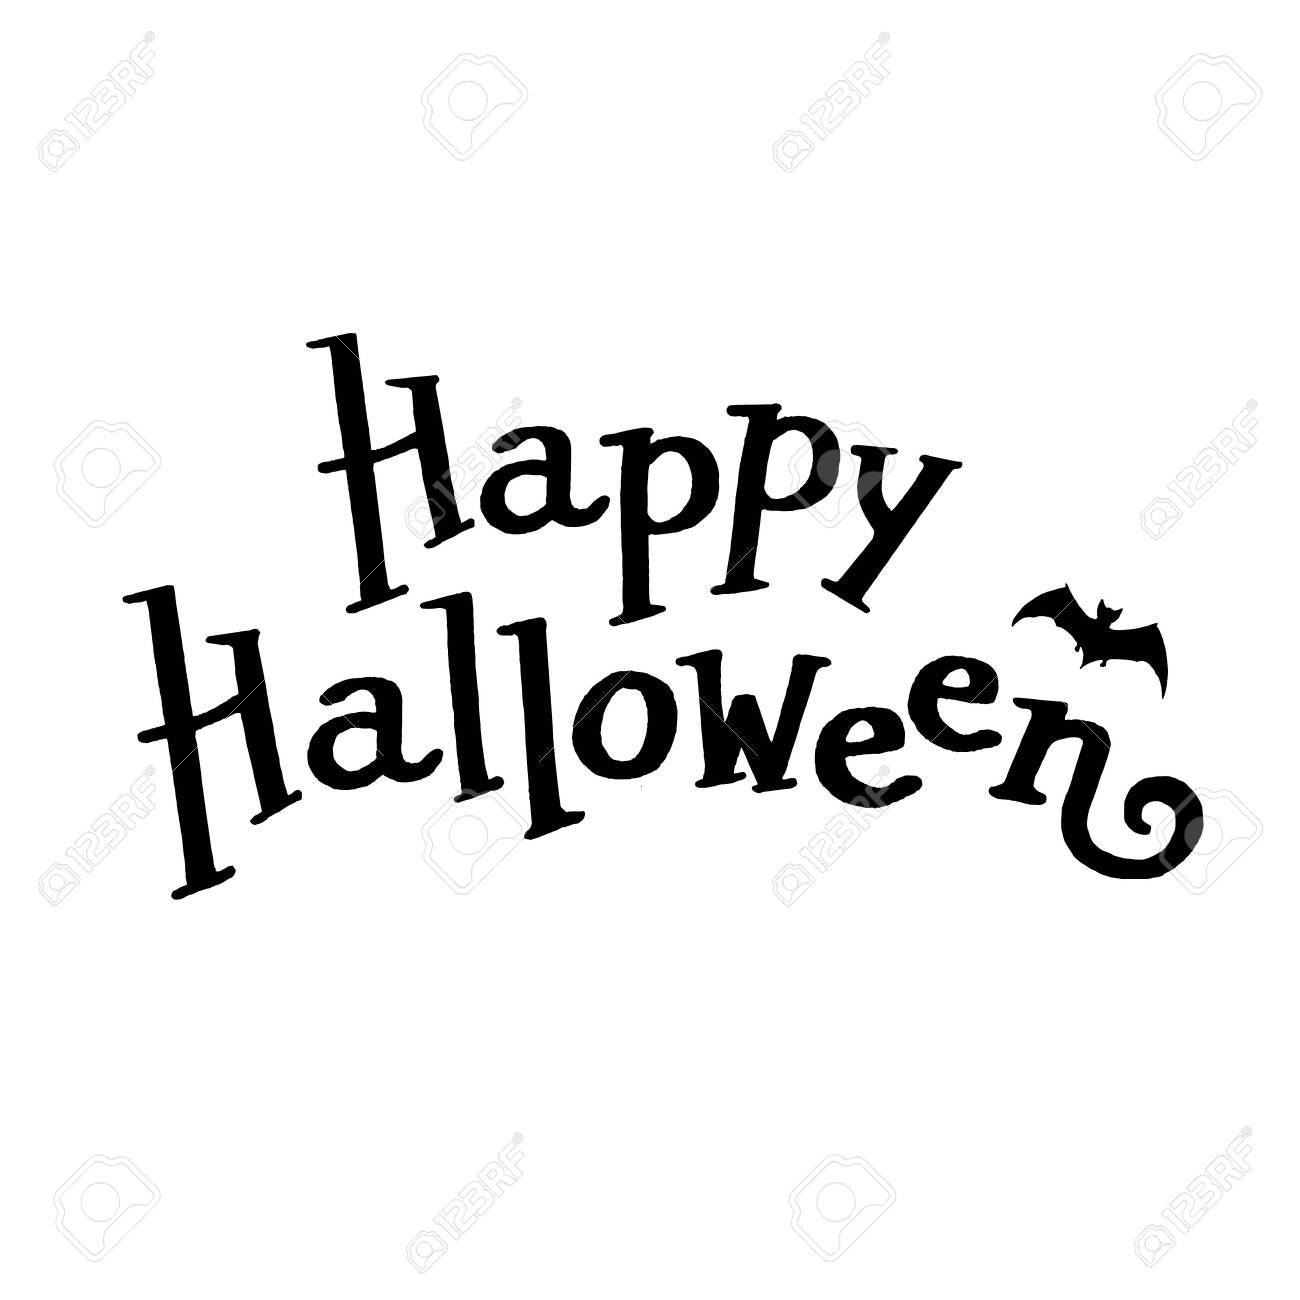 Happy Halloween Lettering Royalty Free Cliparts Vectors And Stock Illustration Image 128634833